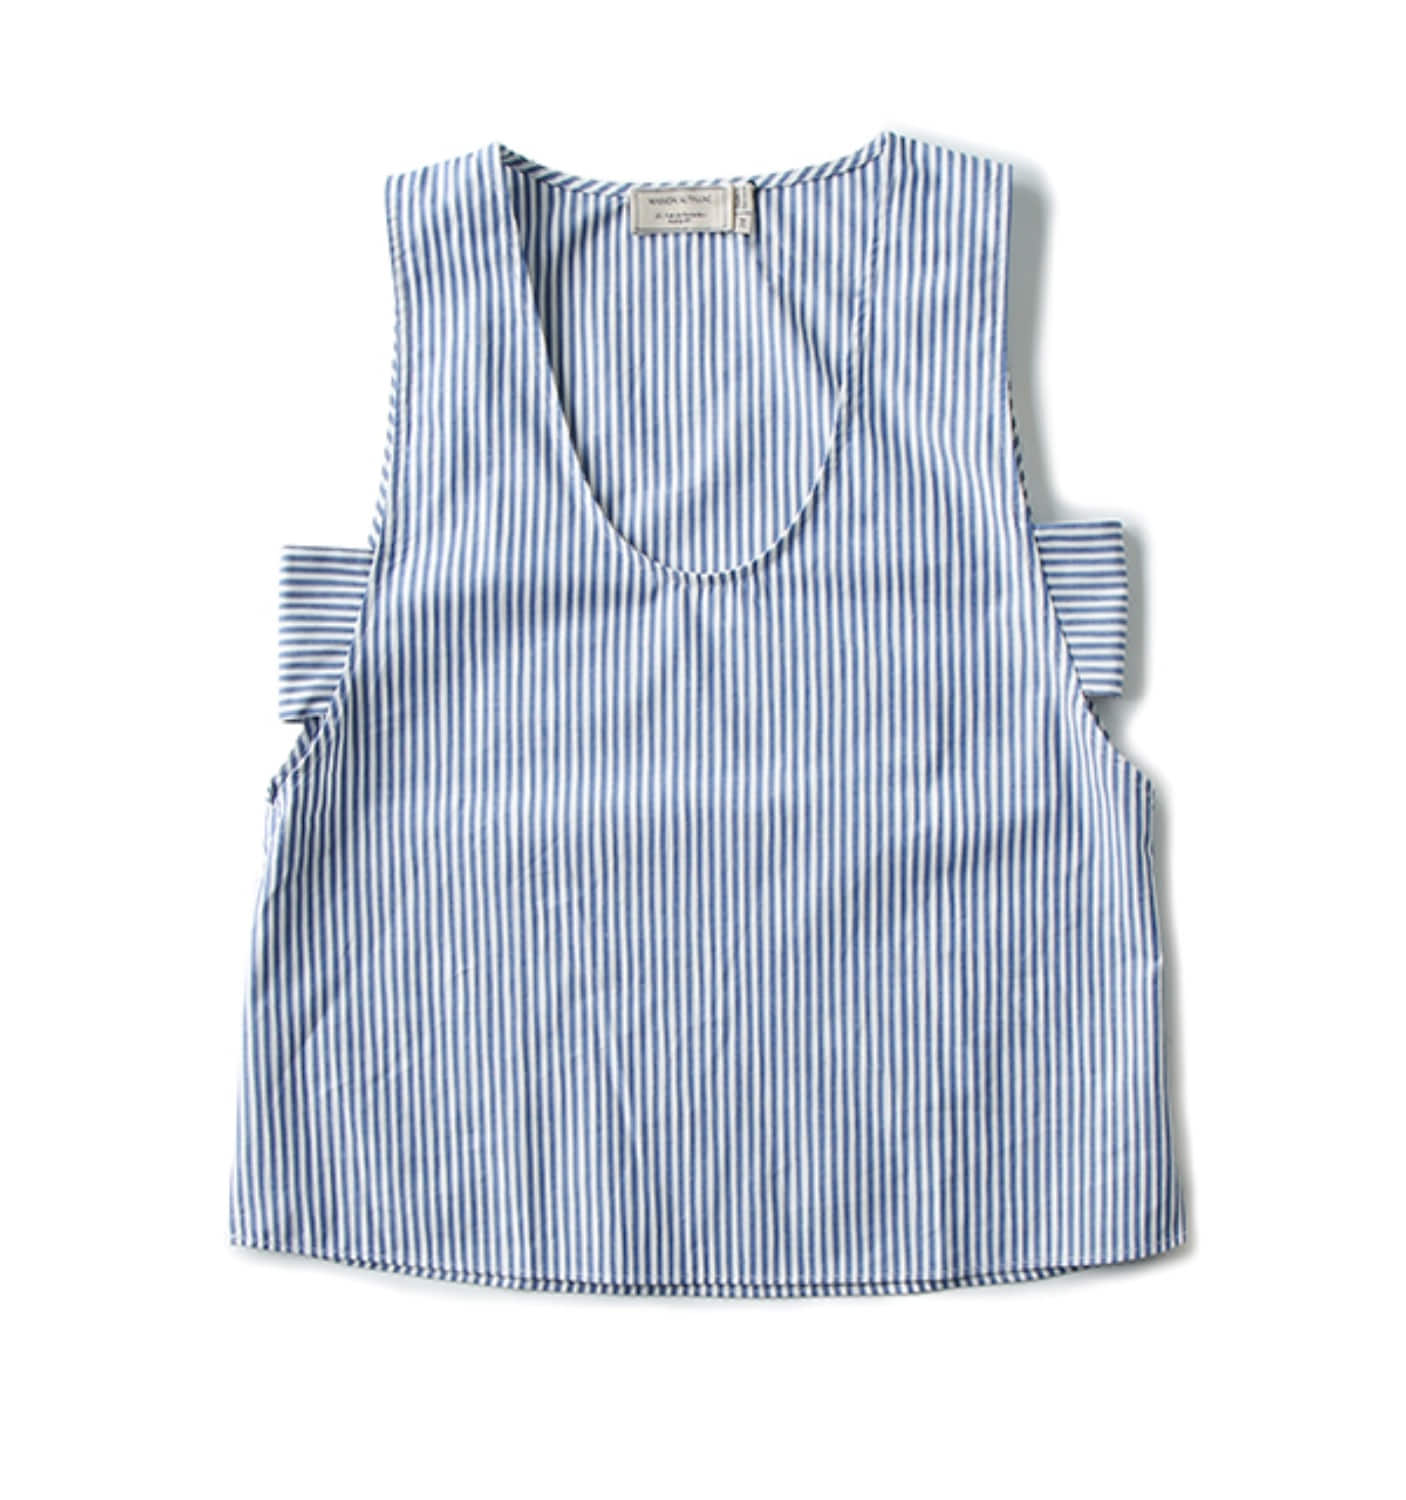 JUNE SIDE STRAP TOP BLUE STRIPE(SS17W014)